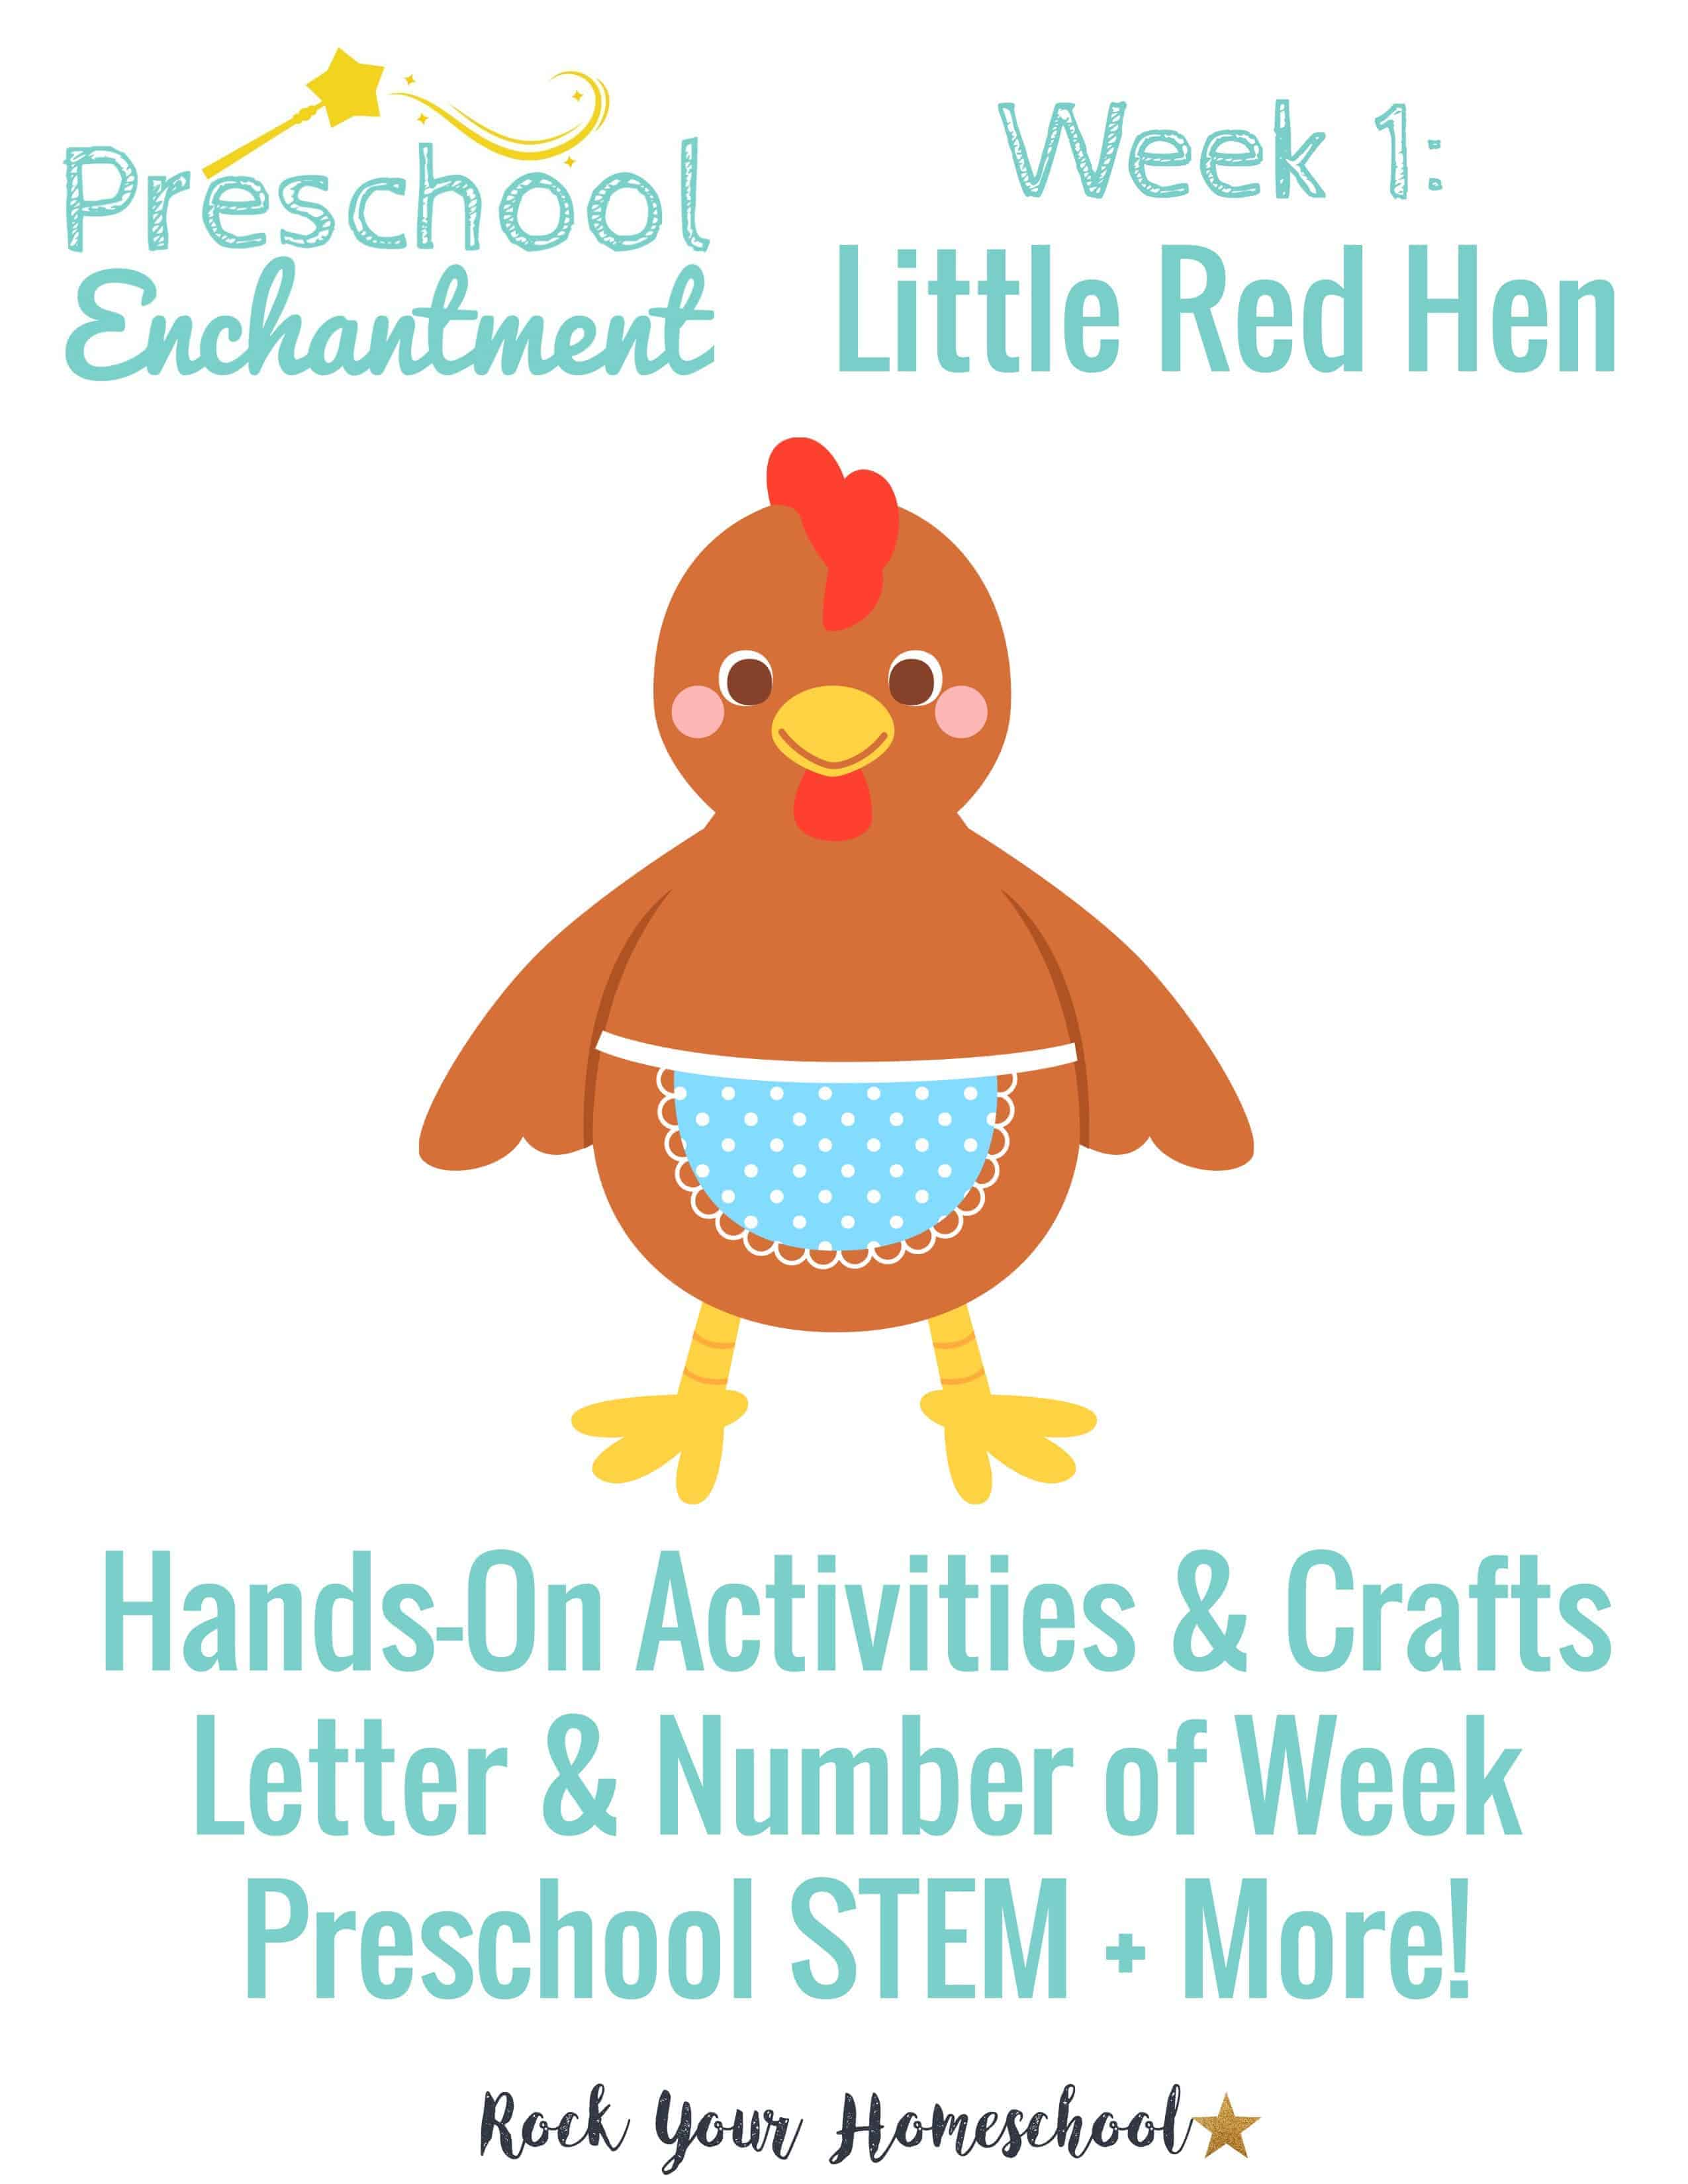 Preschool Enchantment Week 1 Little Red Hen